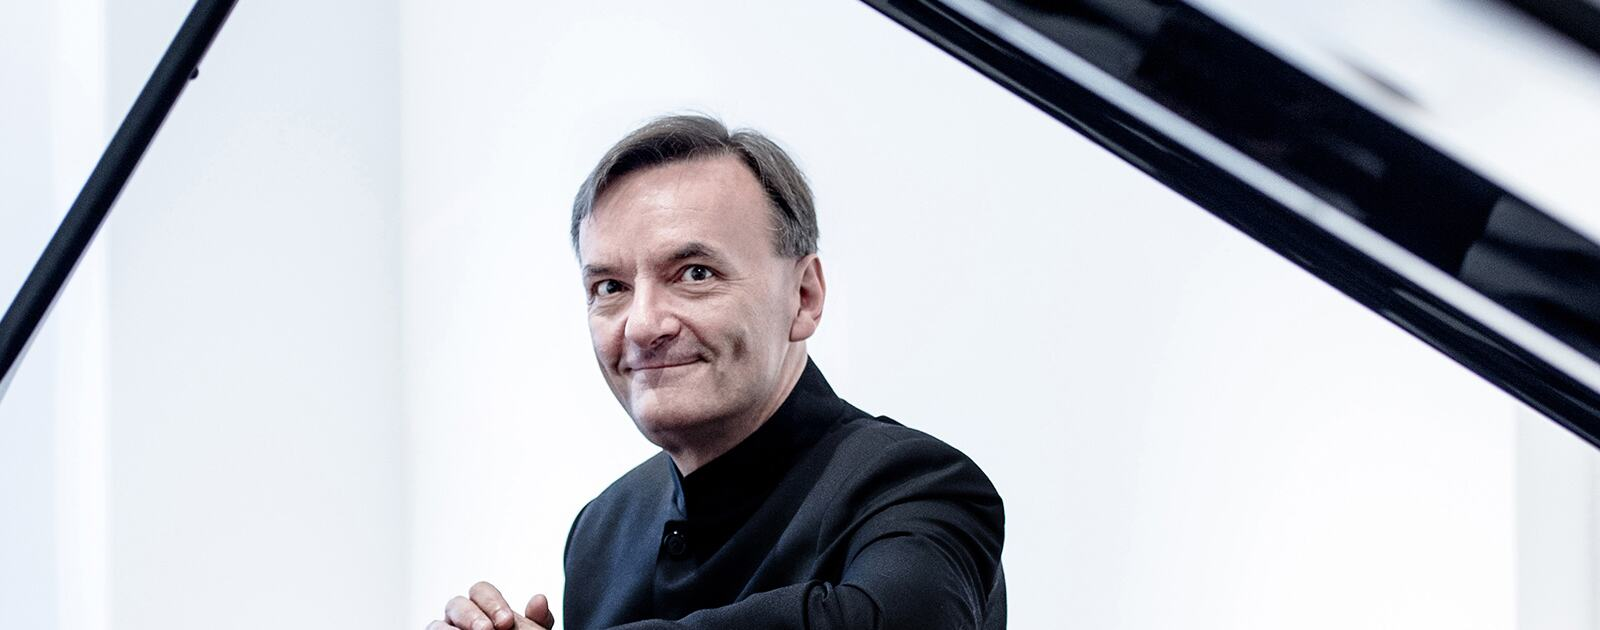 Stephen Hough, pianist